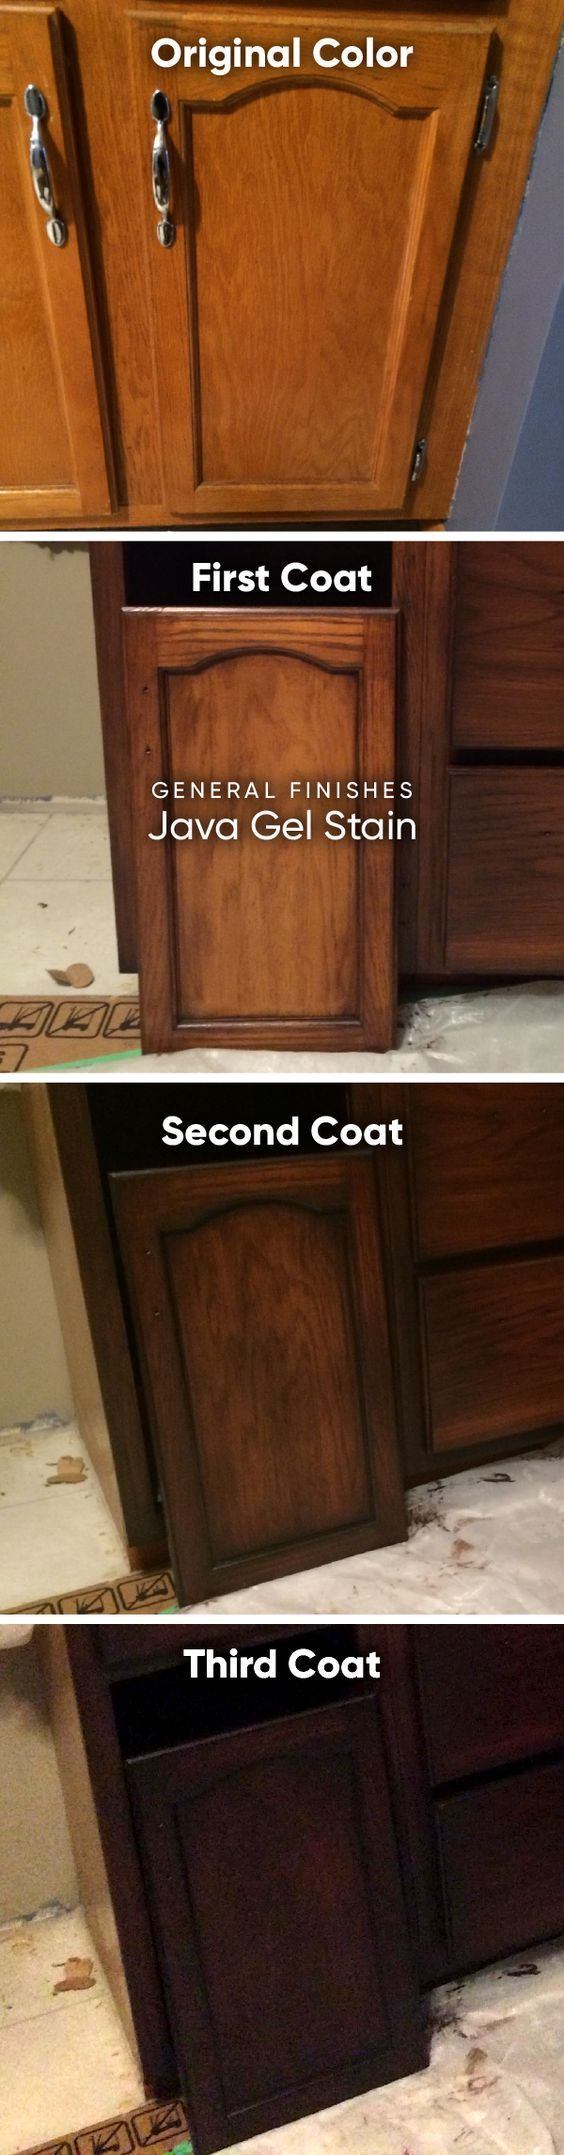 Can i stain over stain - Gel Stain General Finishes Java